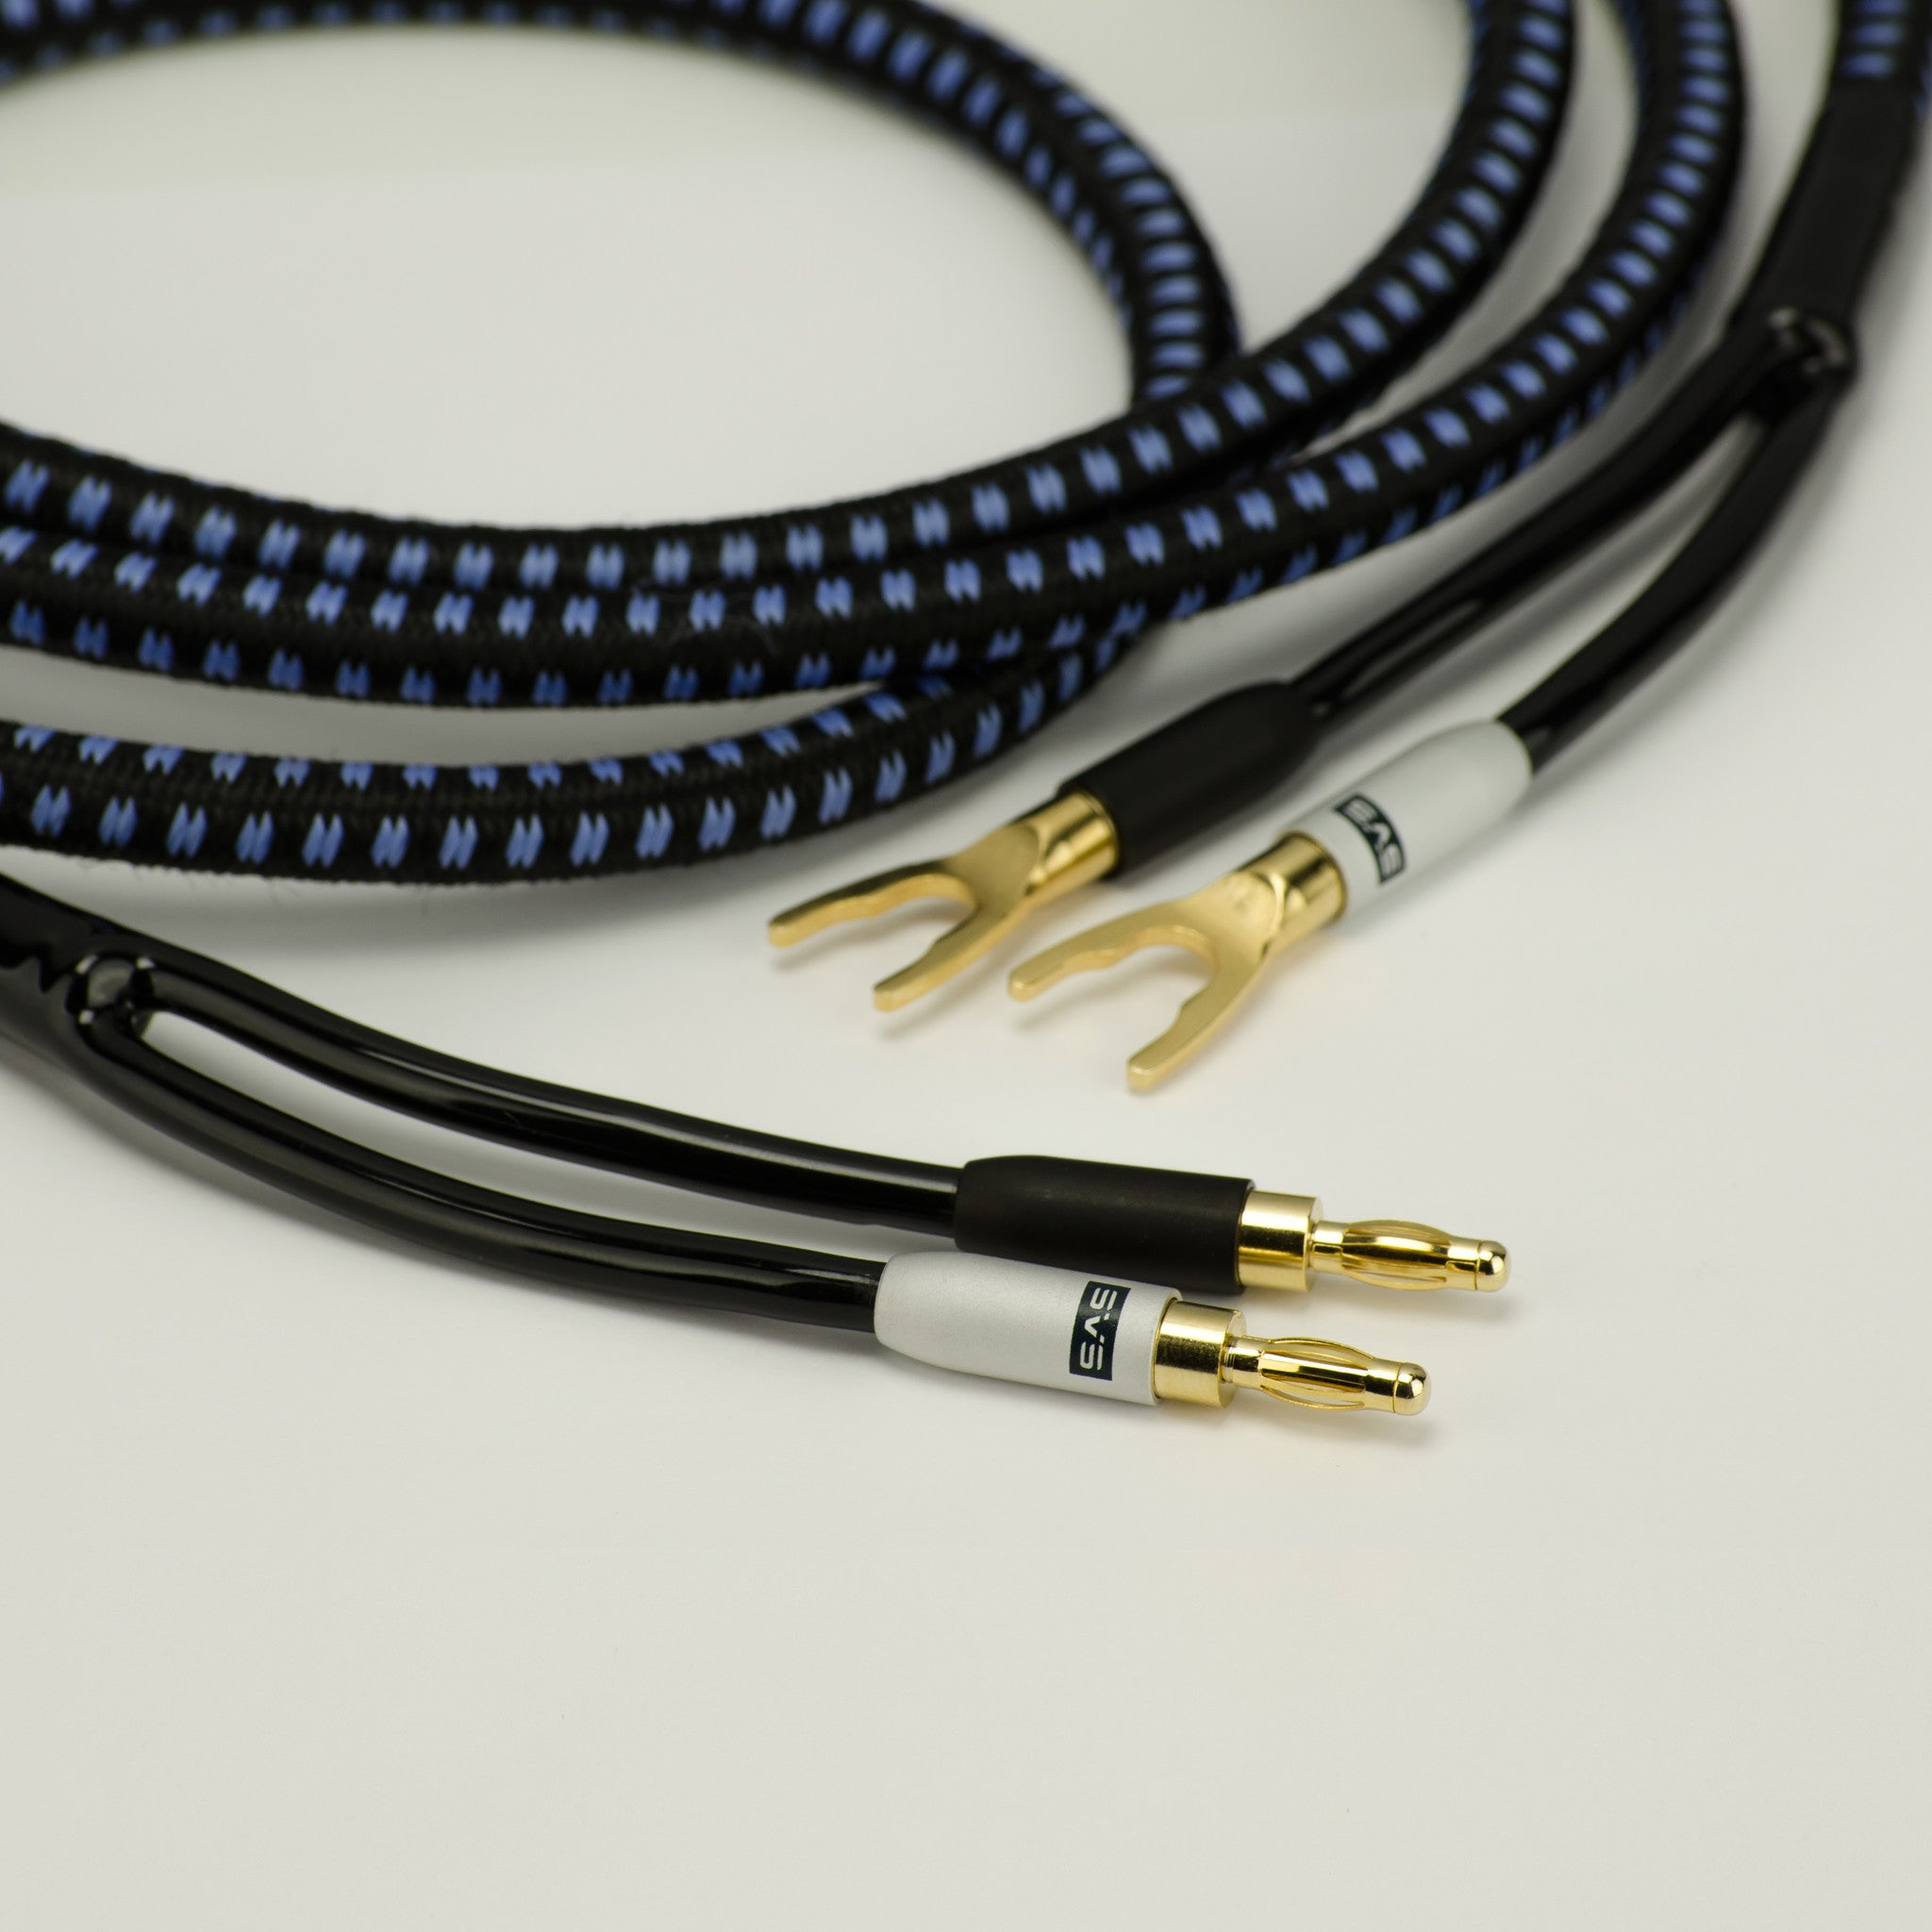 SVS SoundPath Ultra Speaker Cable